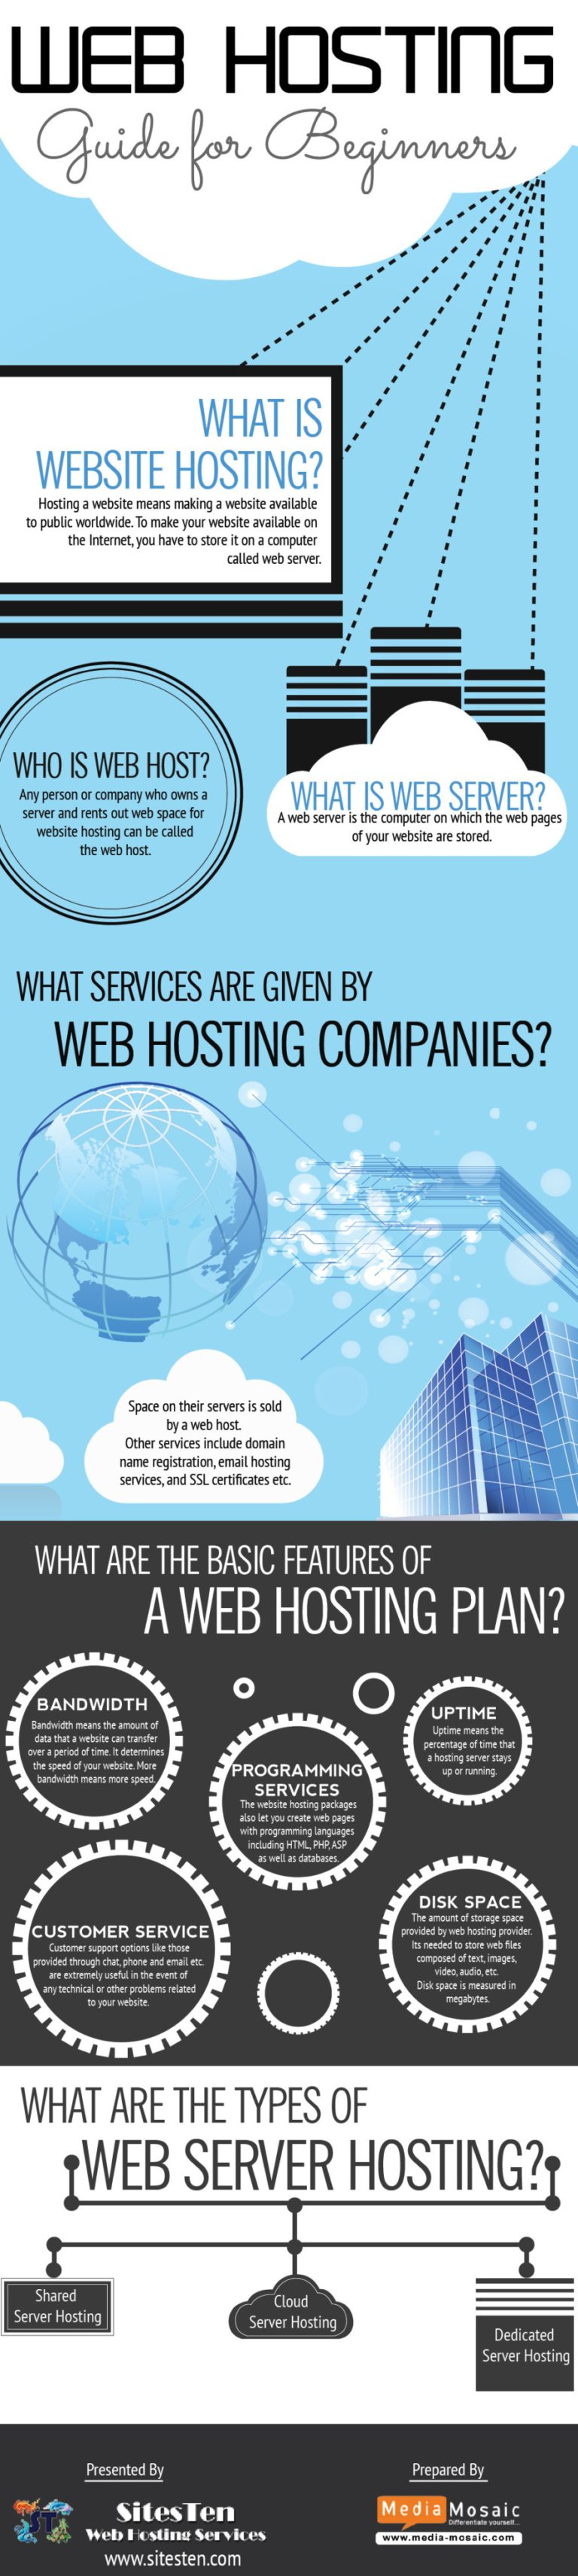 web-hosting-for-beginners-what-it-is-why-you-need-it1-1-768x3422